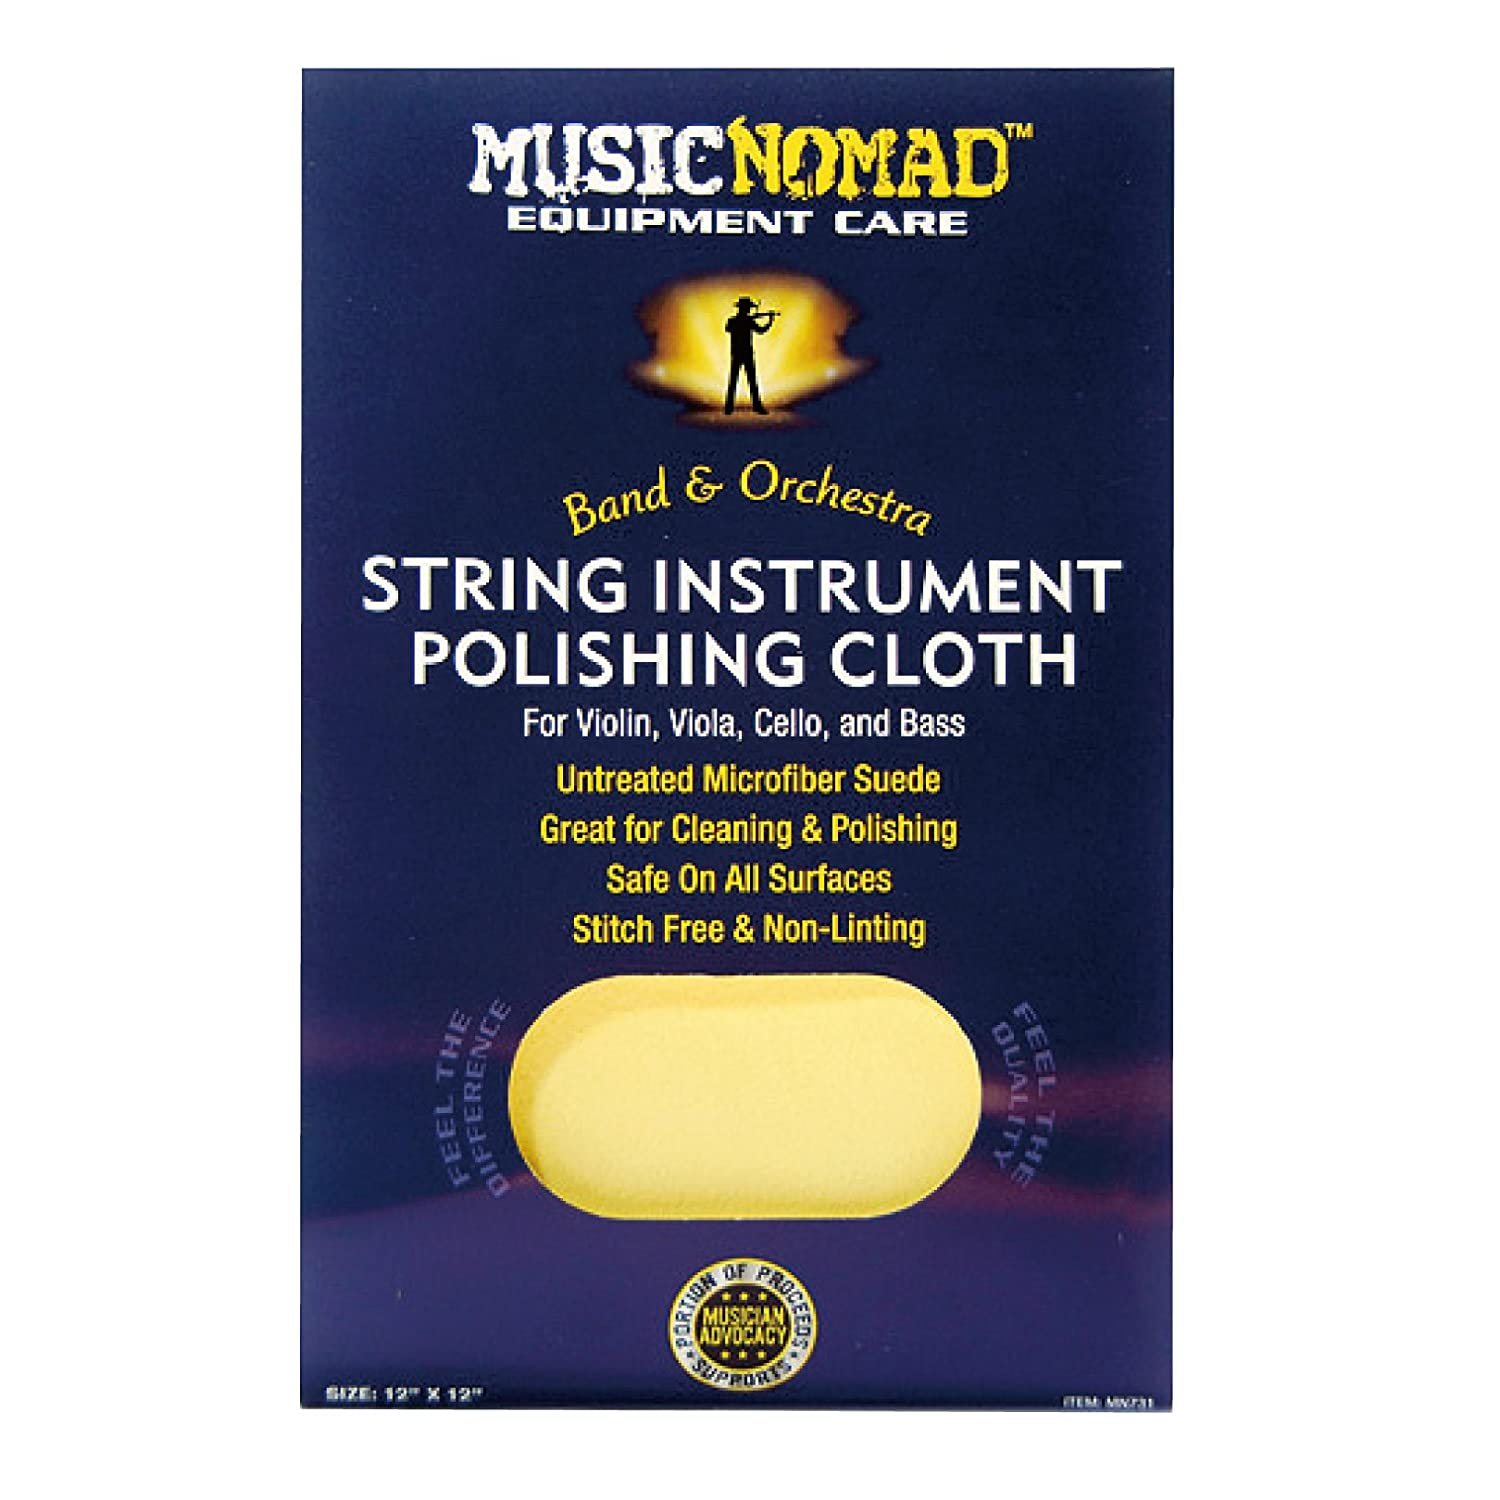 MusicNomad String Instrument Premium Microfiber Polishing Cloth for Violin, Viola, Cello and Bass MN731